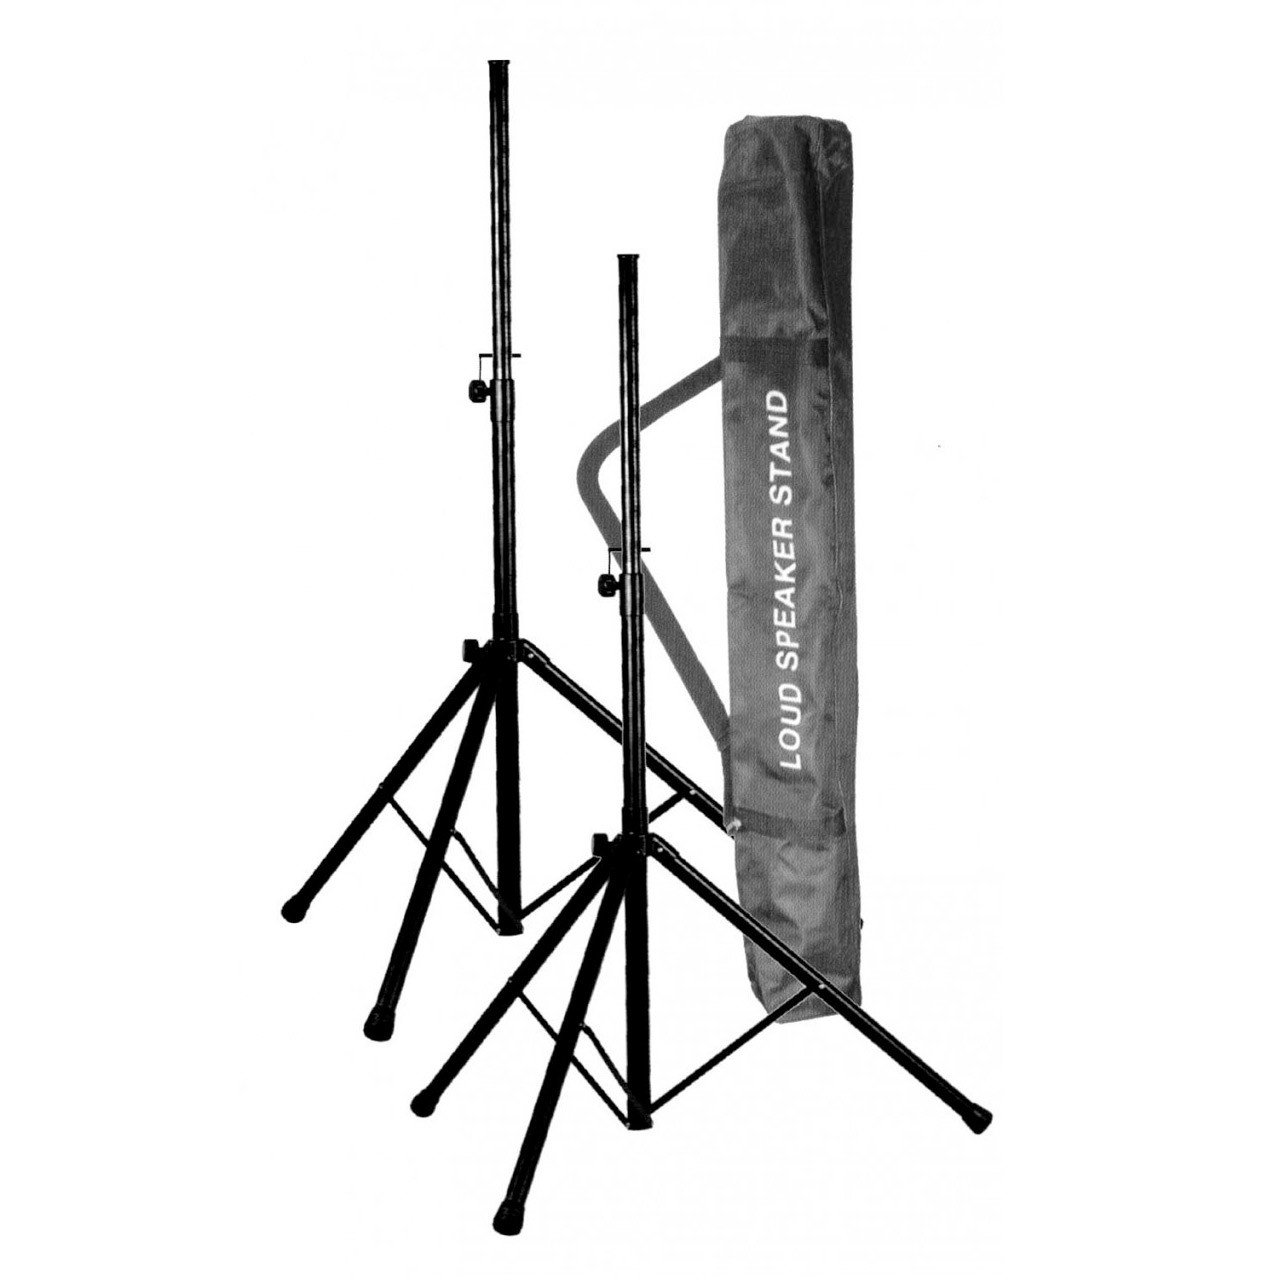 UXL Deluxe Tubular All-Steel PA Loud Speaker Stands + Carry Bag Combo